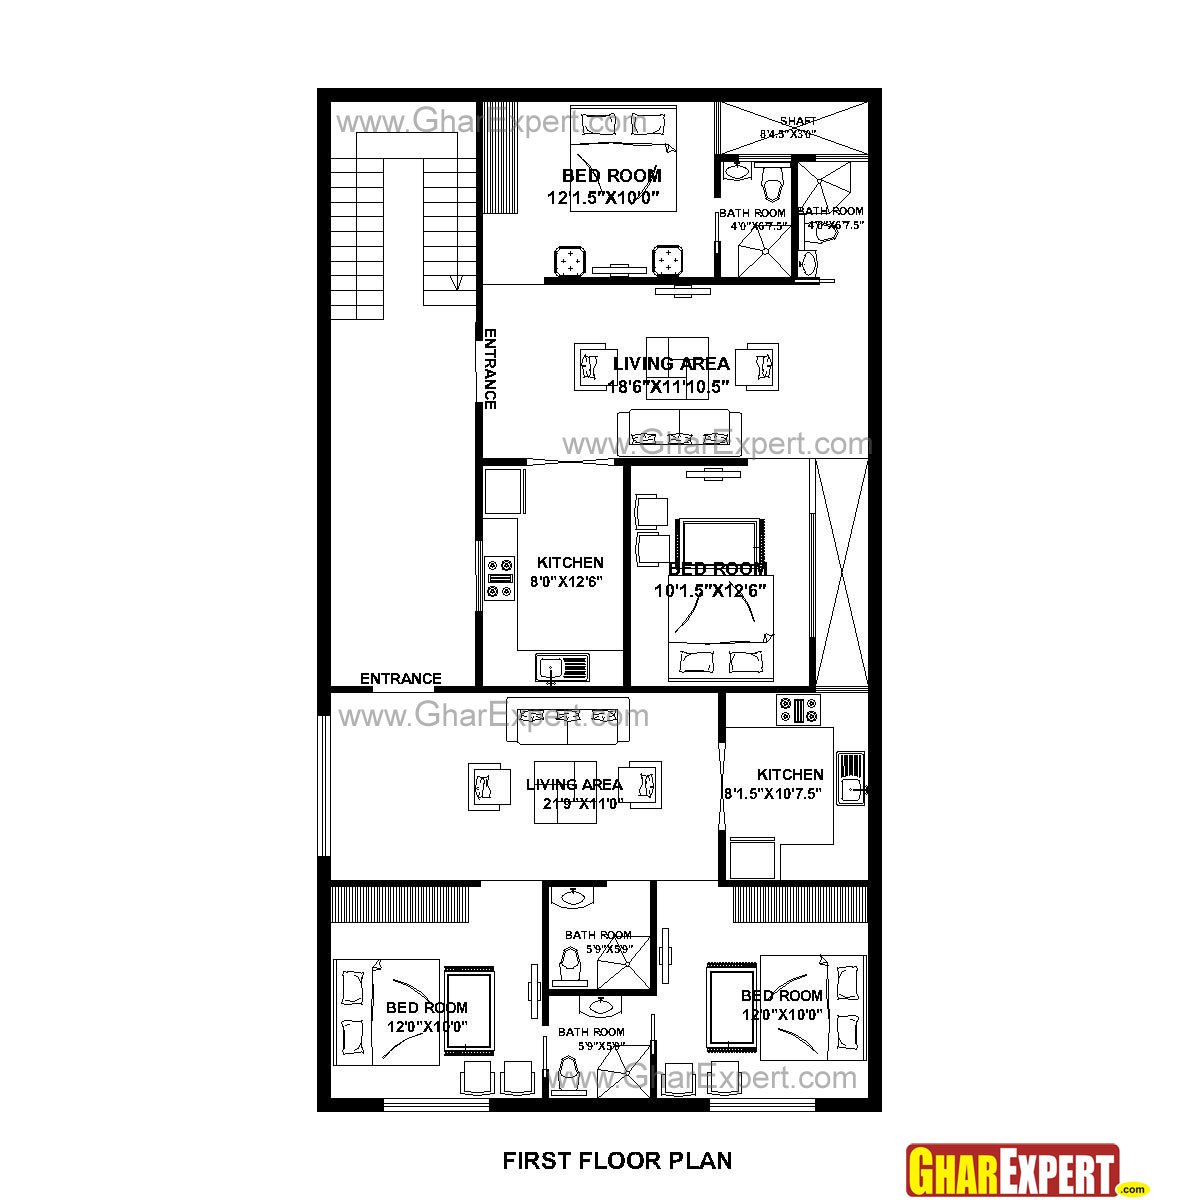 House Plan For 33 Feet By 40 Feet Plot Plot Size 147: House Plan For 32 Feet By 58 Feet Plot (Plot Size 206